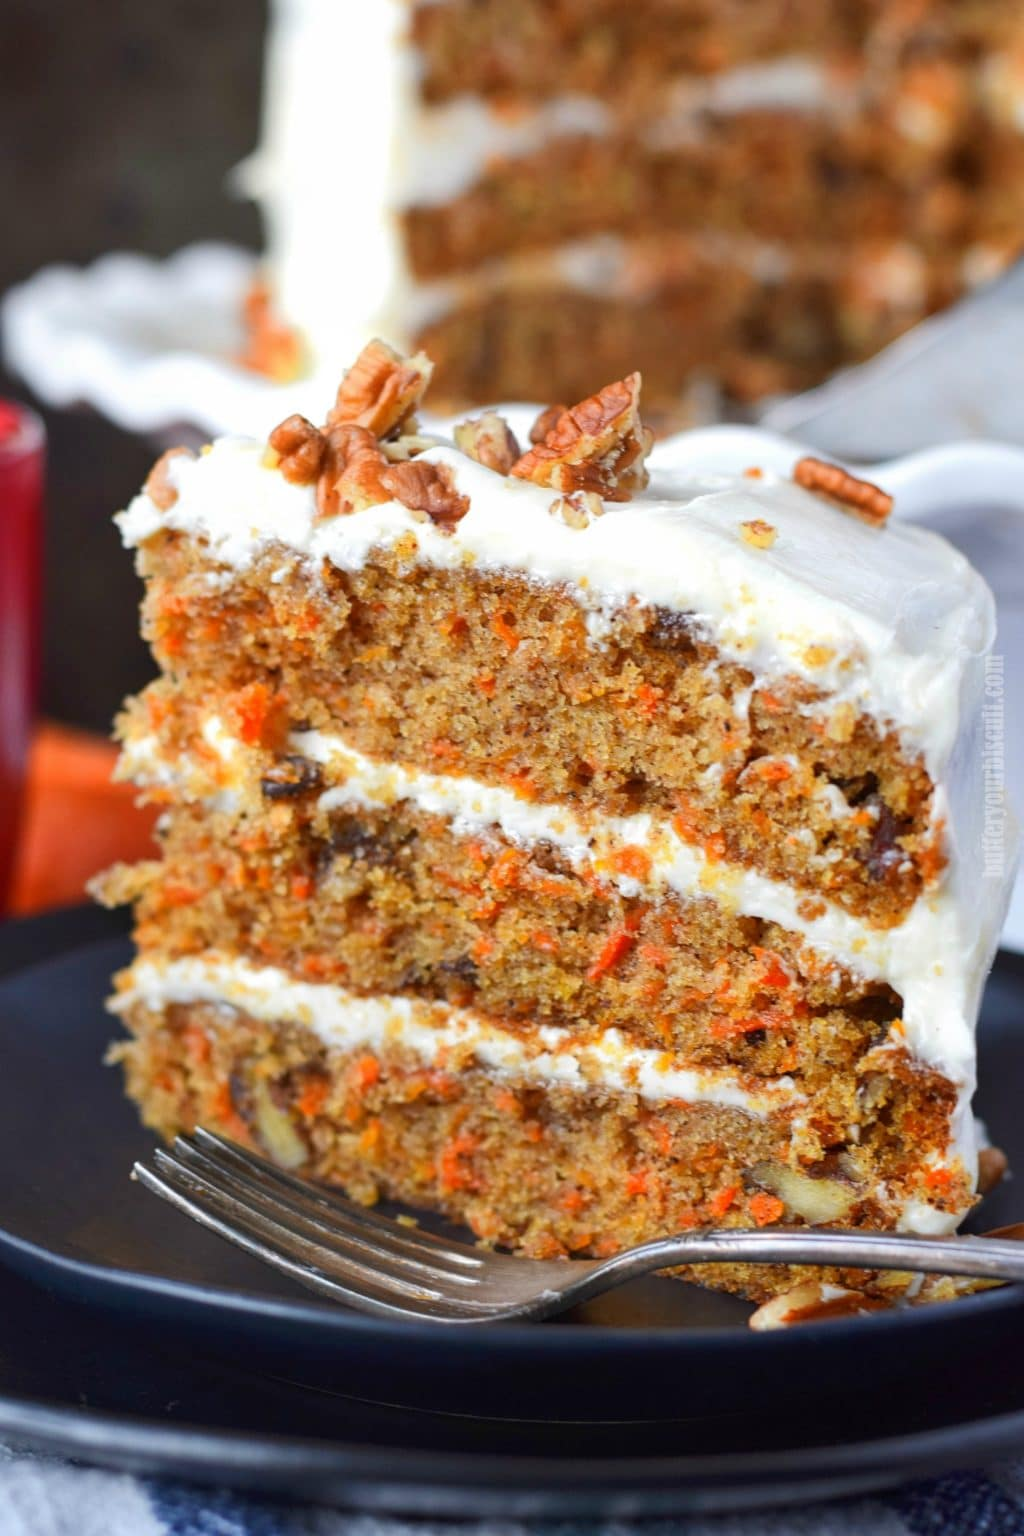 6 Carrot Cake Recipes to Impress Your Friends